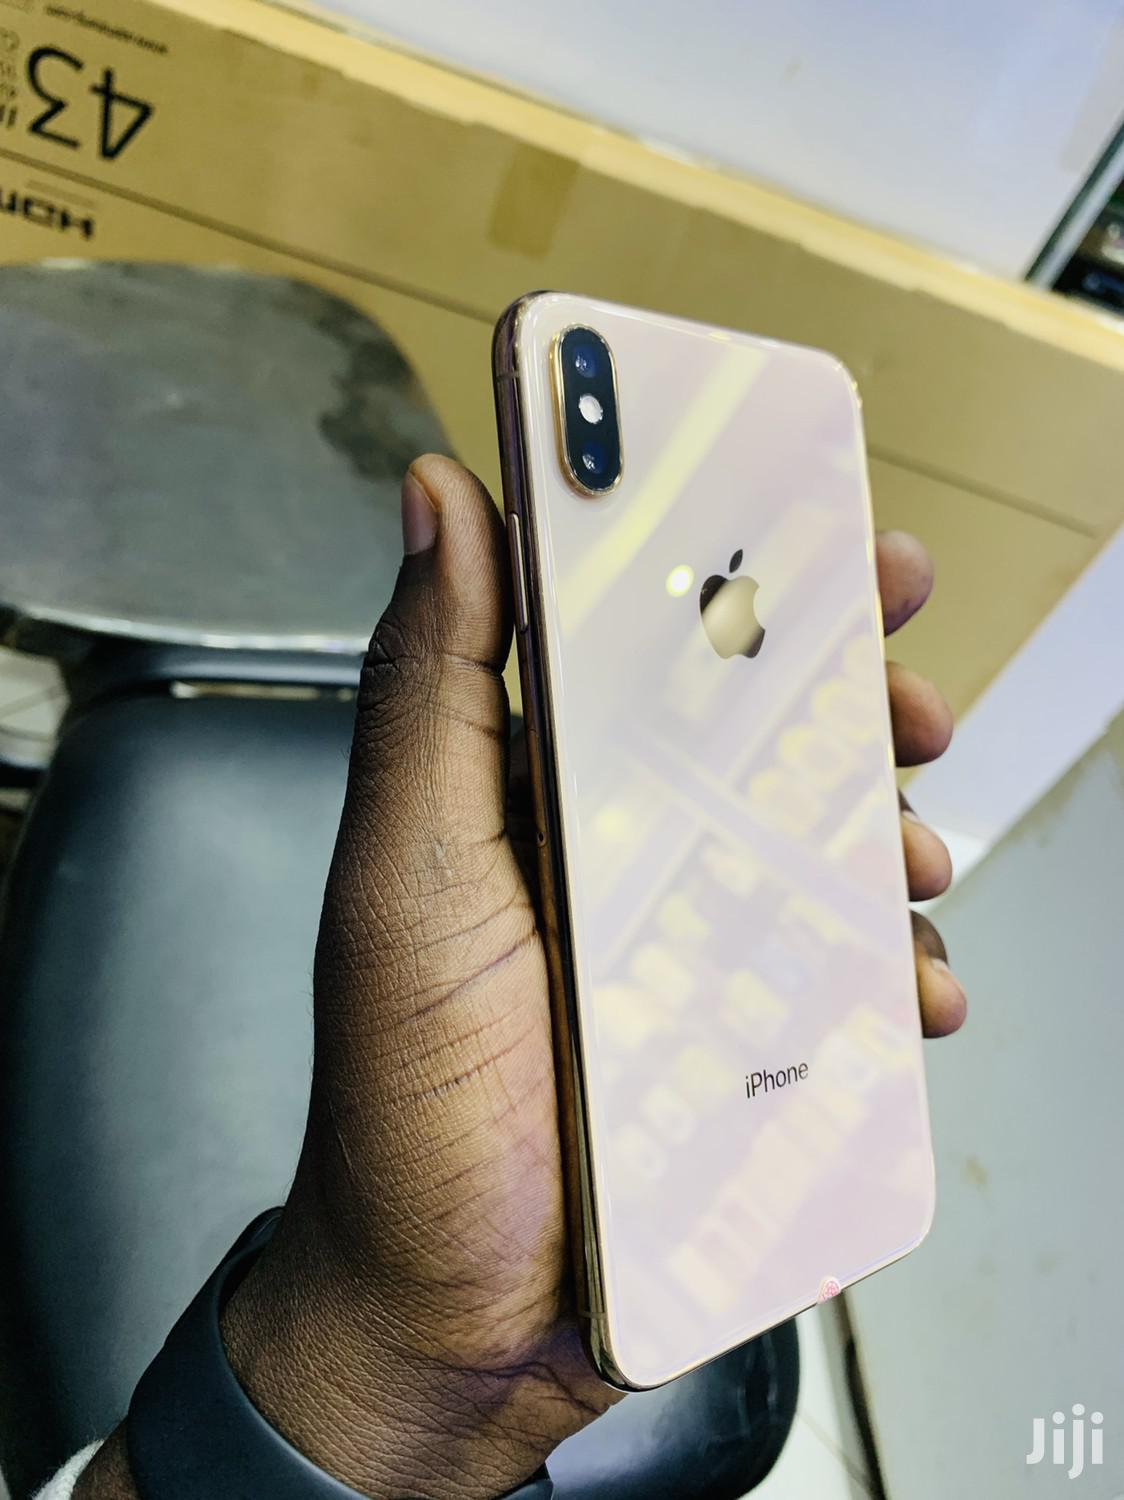 Archive: Apple iPhone XS Max Gold 256 GB